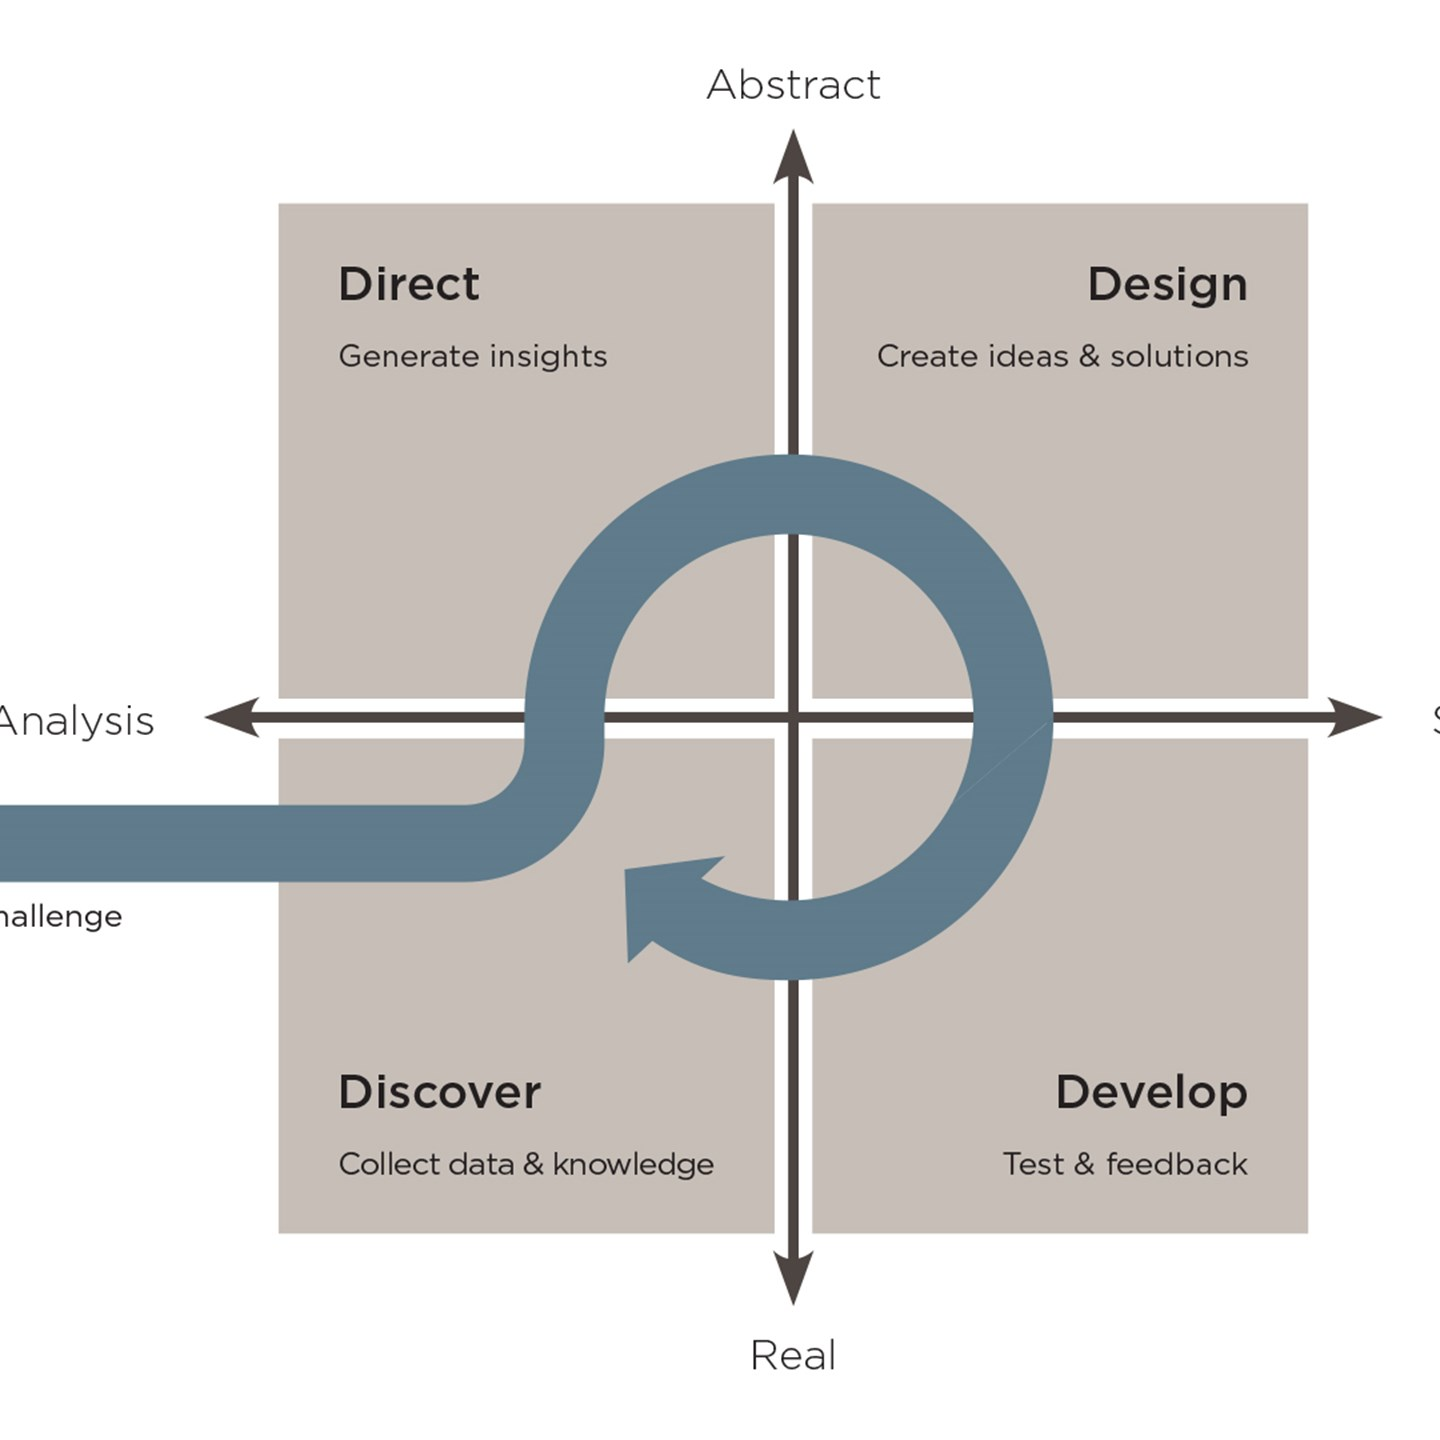 The framework for discovery-driven innovation